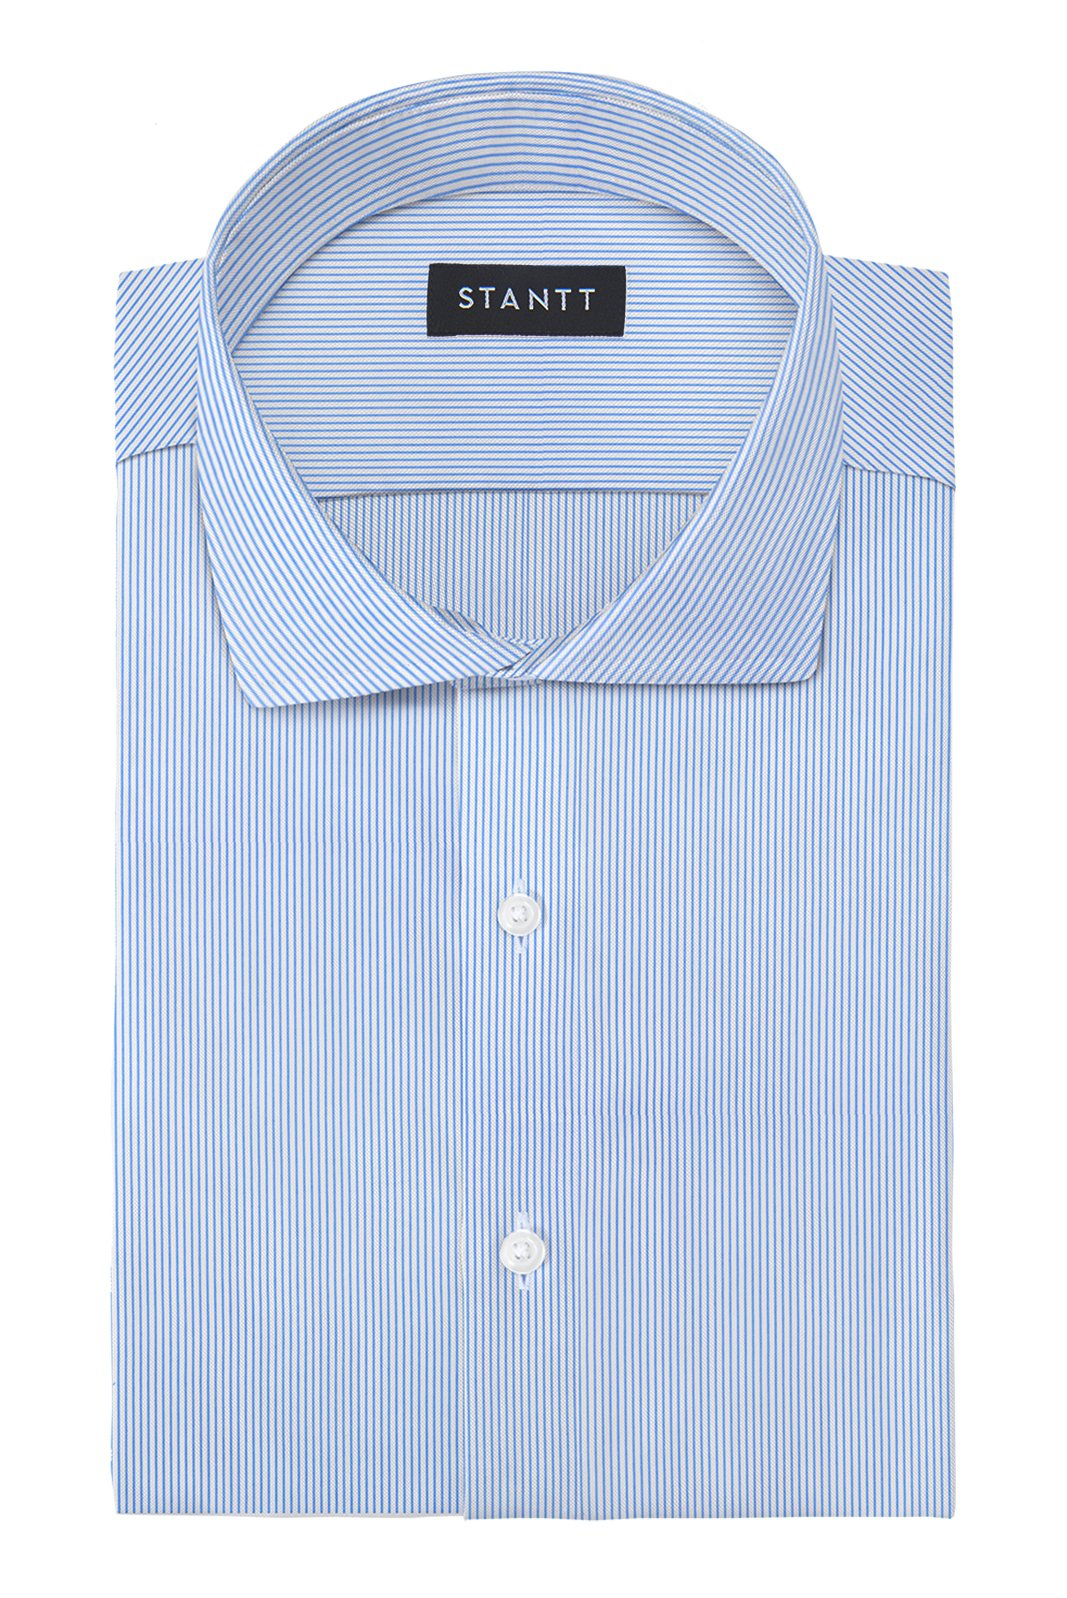 Performance Blue Bengal Stripe: Cutaway Collar, French Cuff